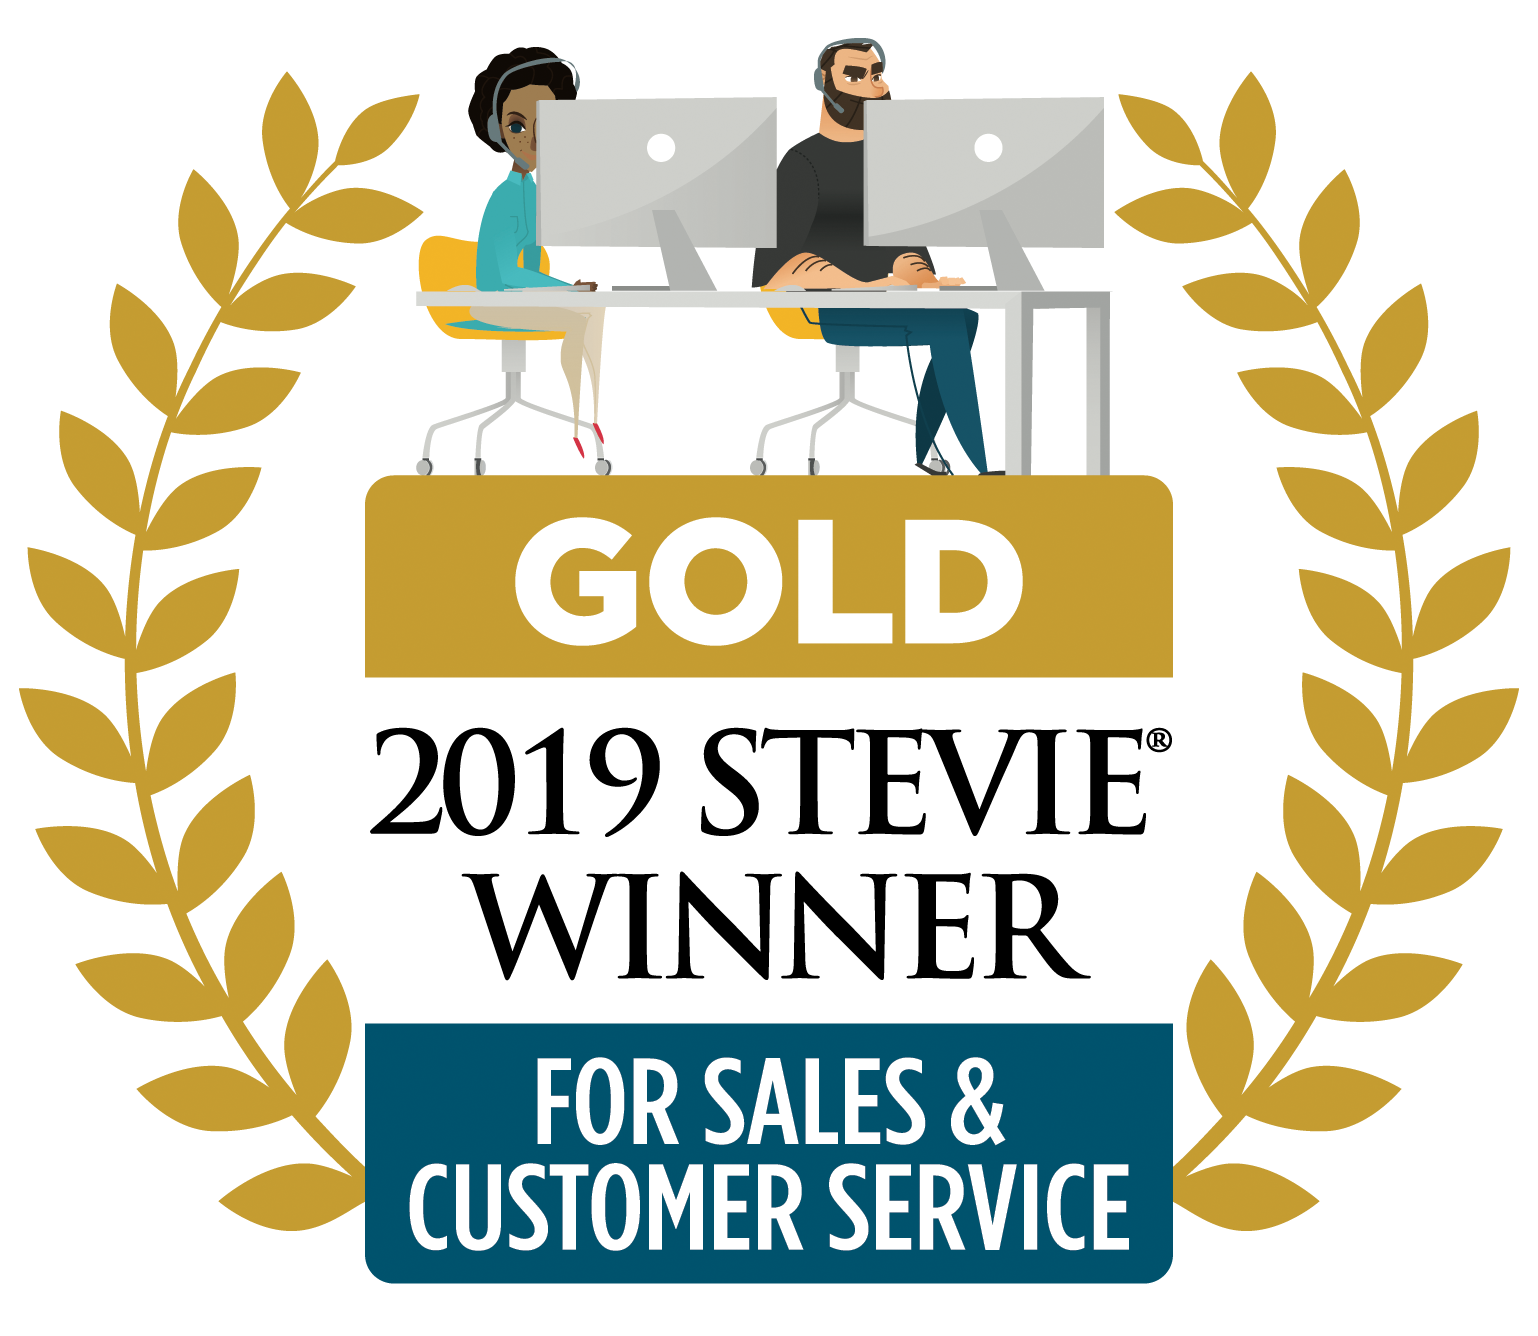 Gold 2019 Stevie Winner For Sales & Customer Service